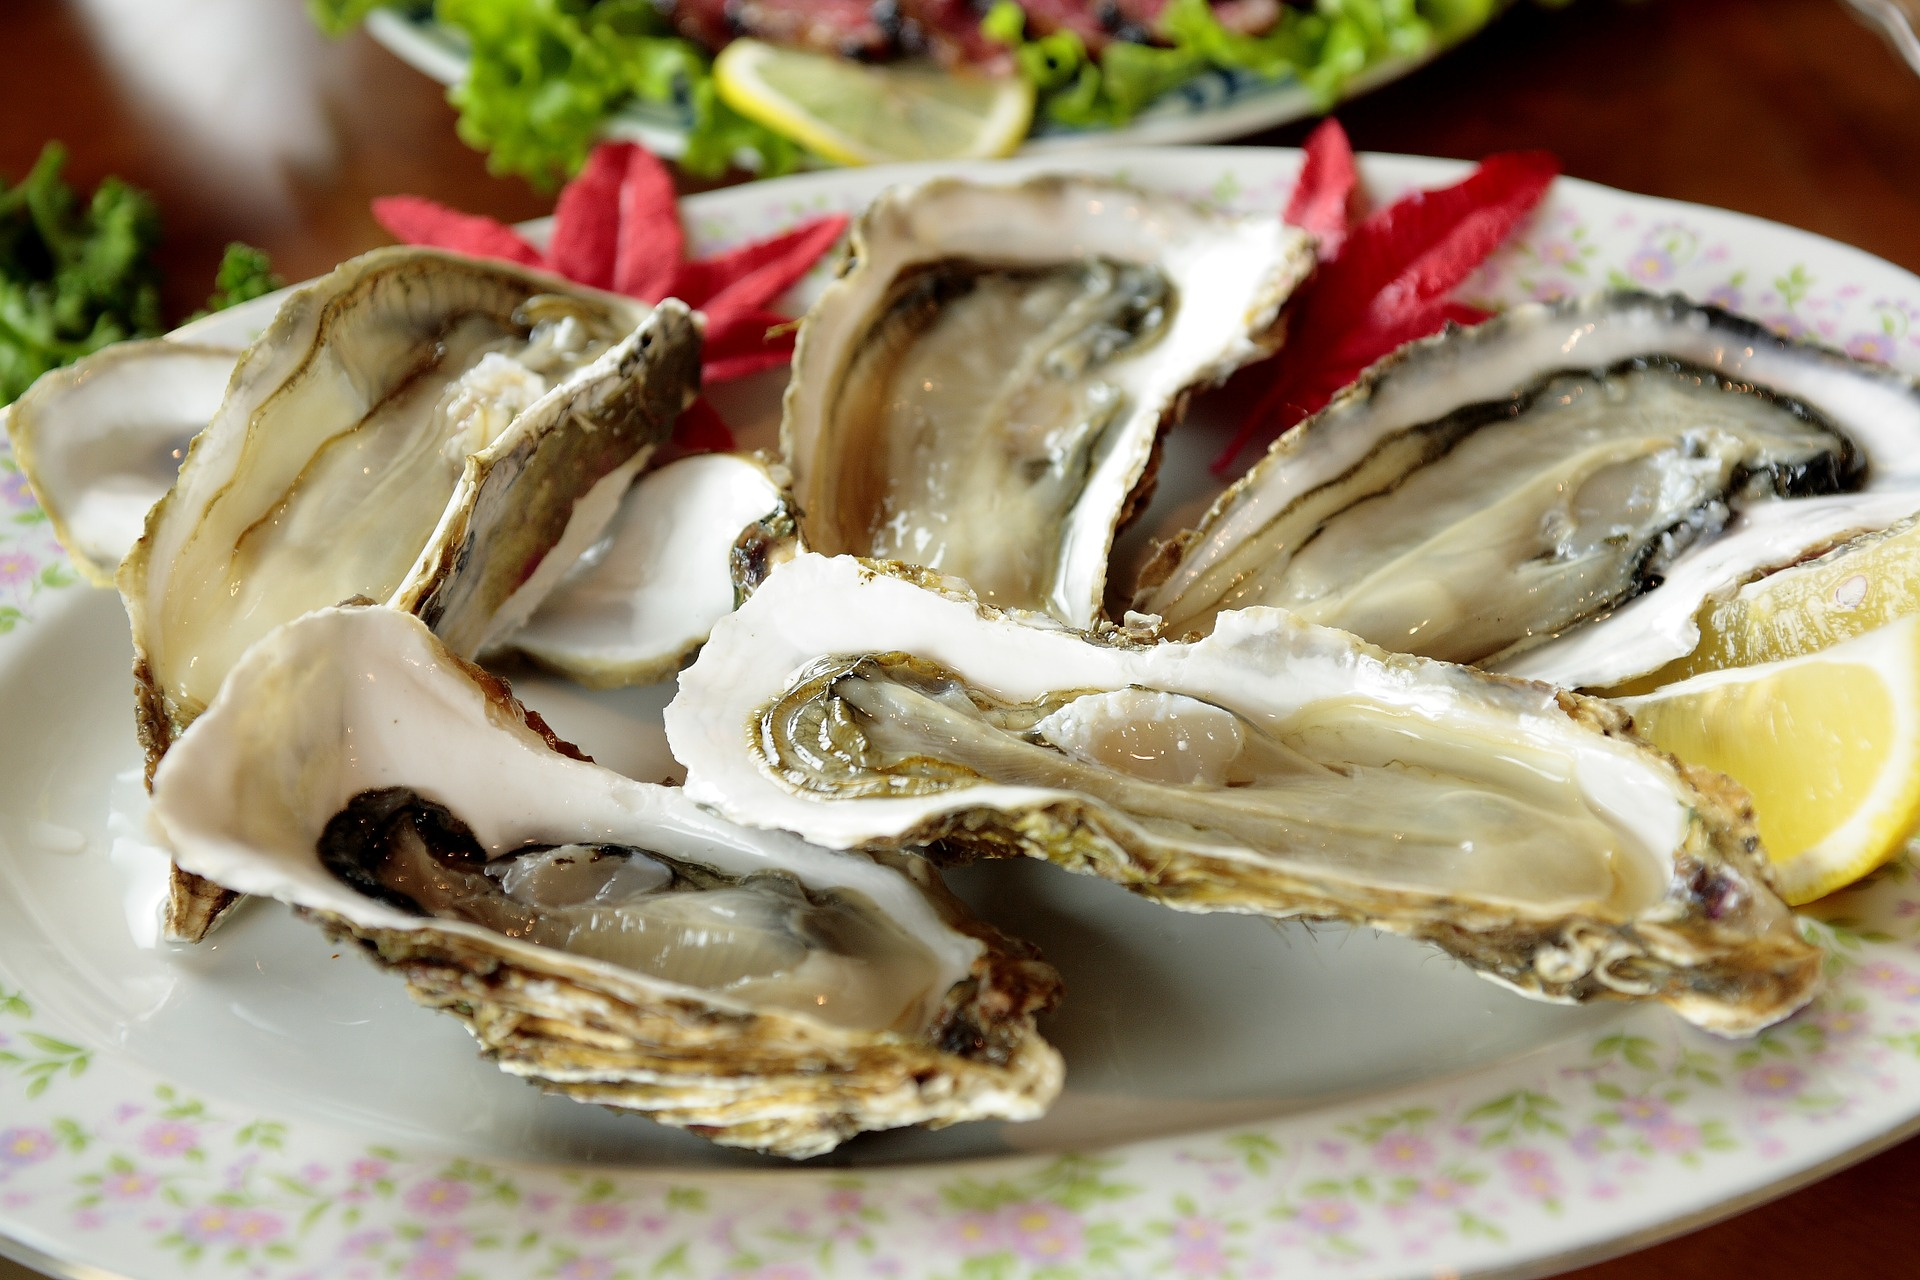 Celebrate National Oyster Day!